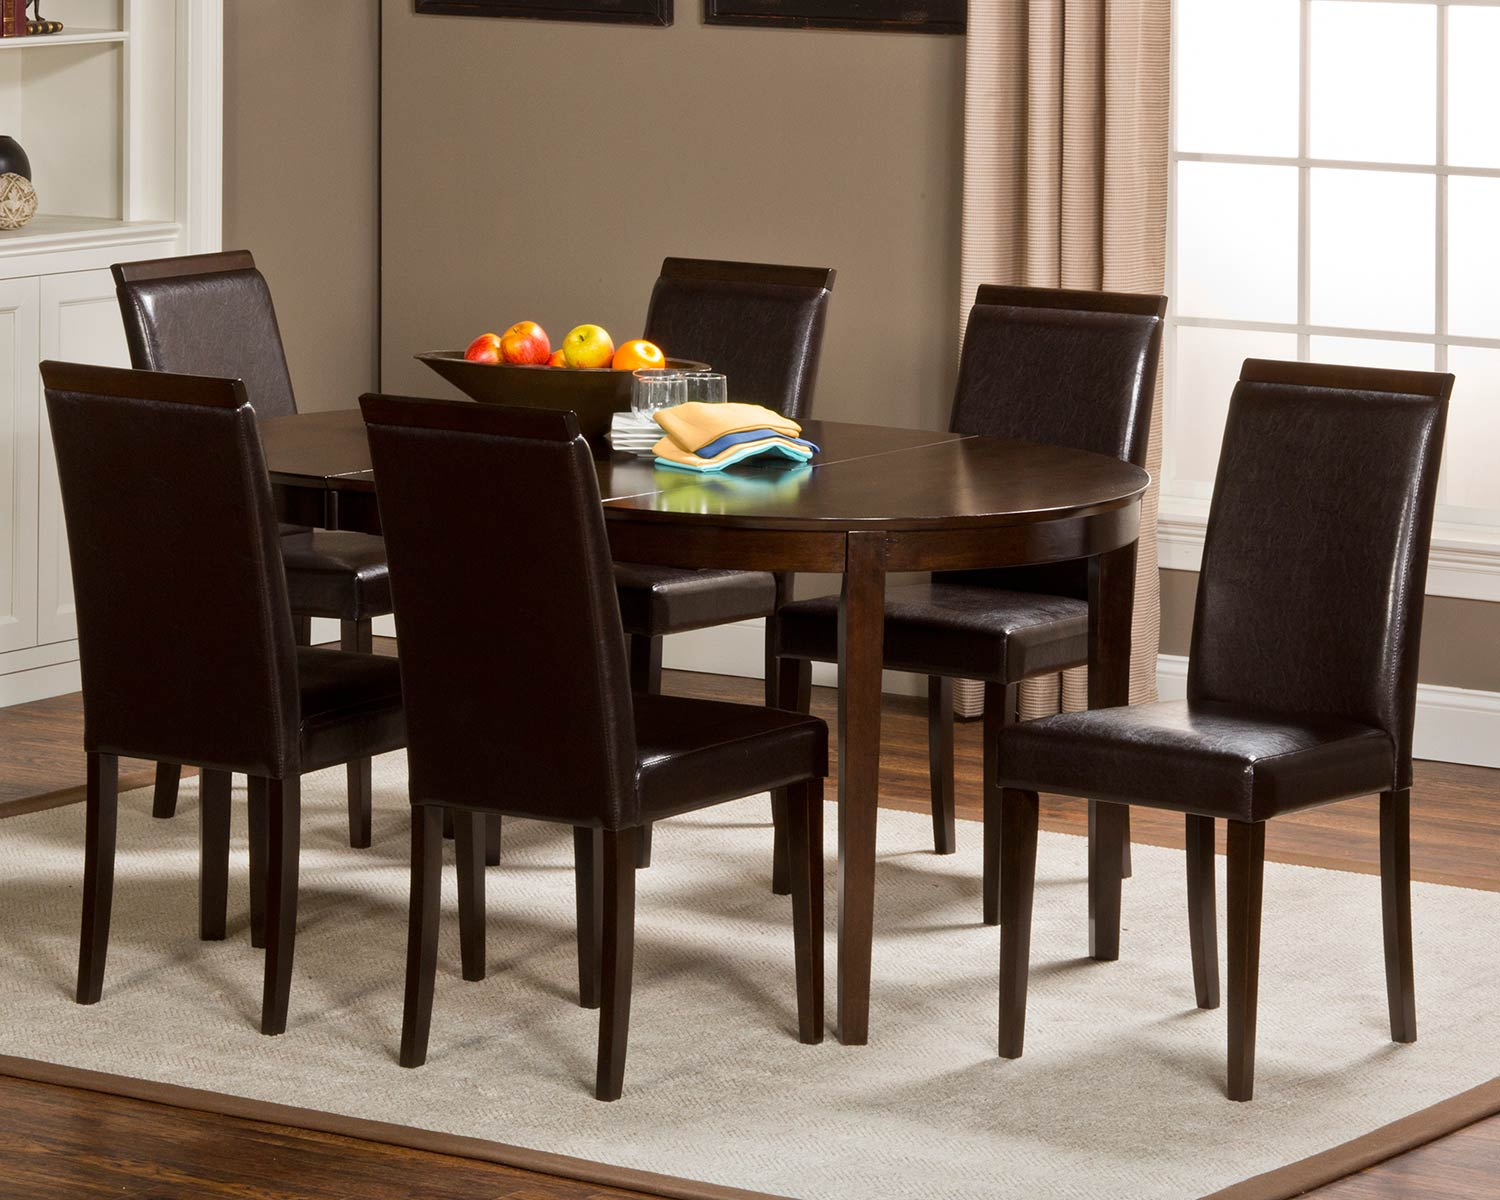 Hillsdale Atmore 7 piece Dining Set - Cappuccino